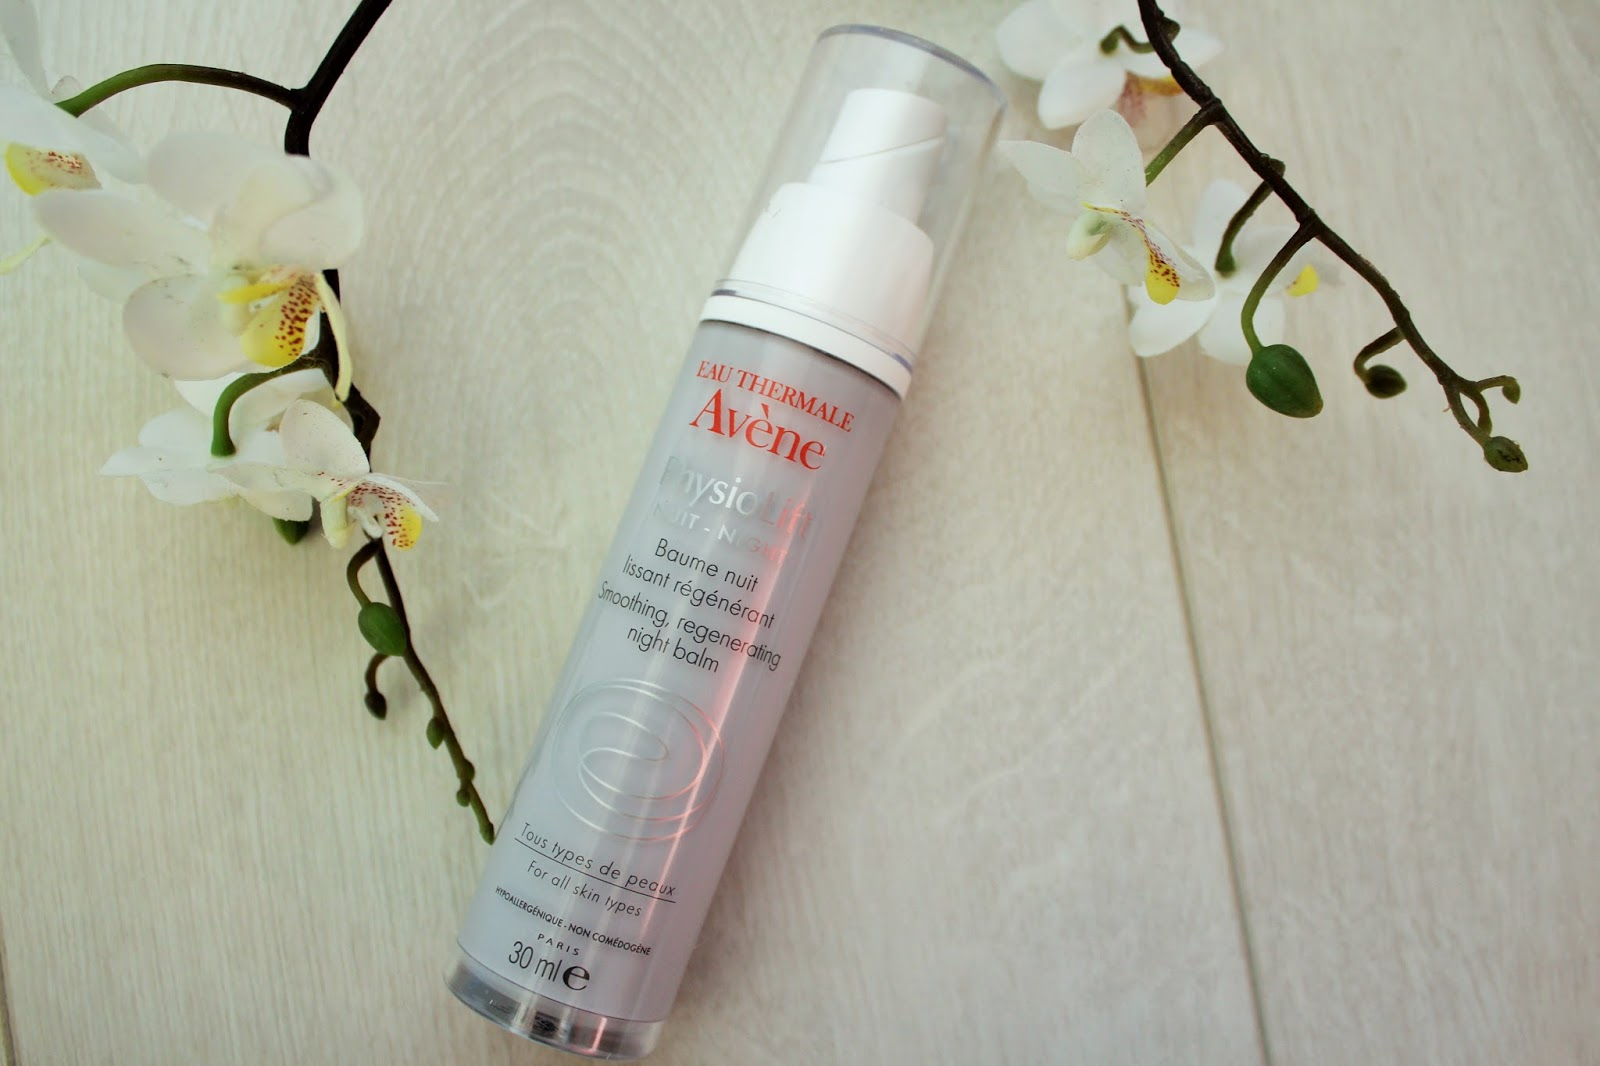 Avene PhysioLift range - Anti-Ageing skincare - night cream